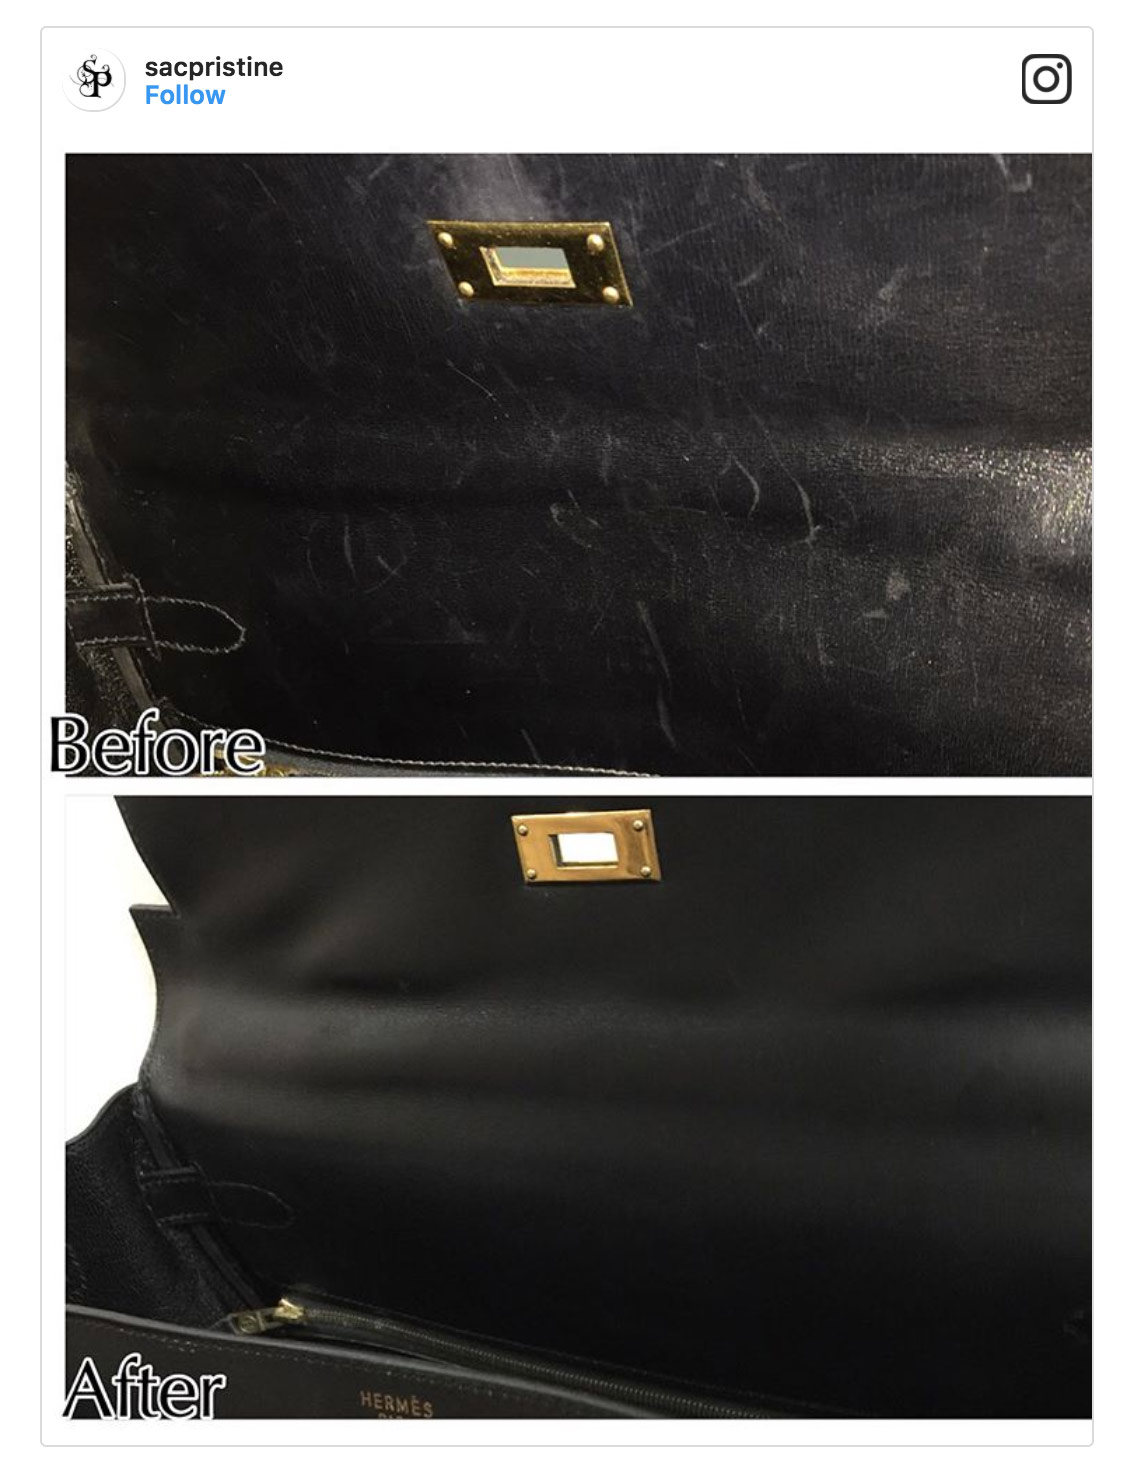 sacpristine before and after handbag repair